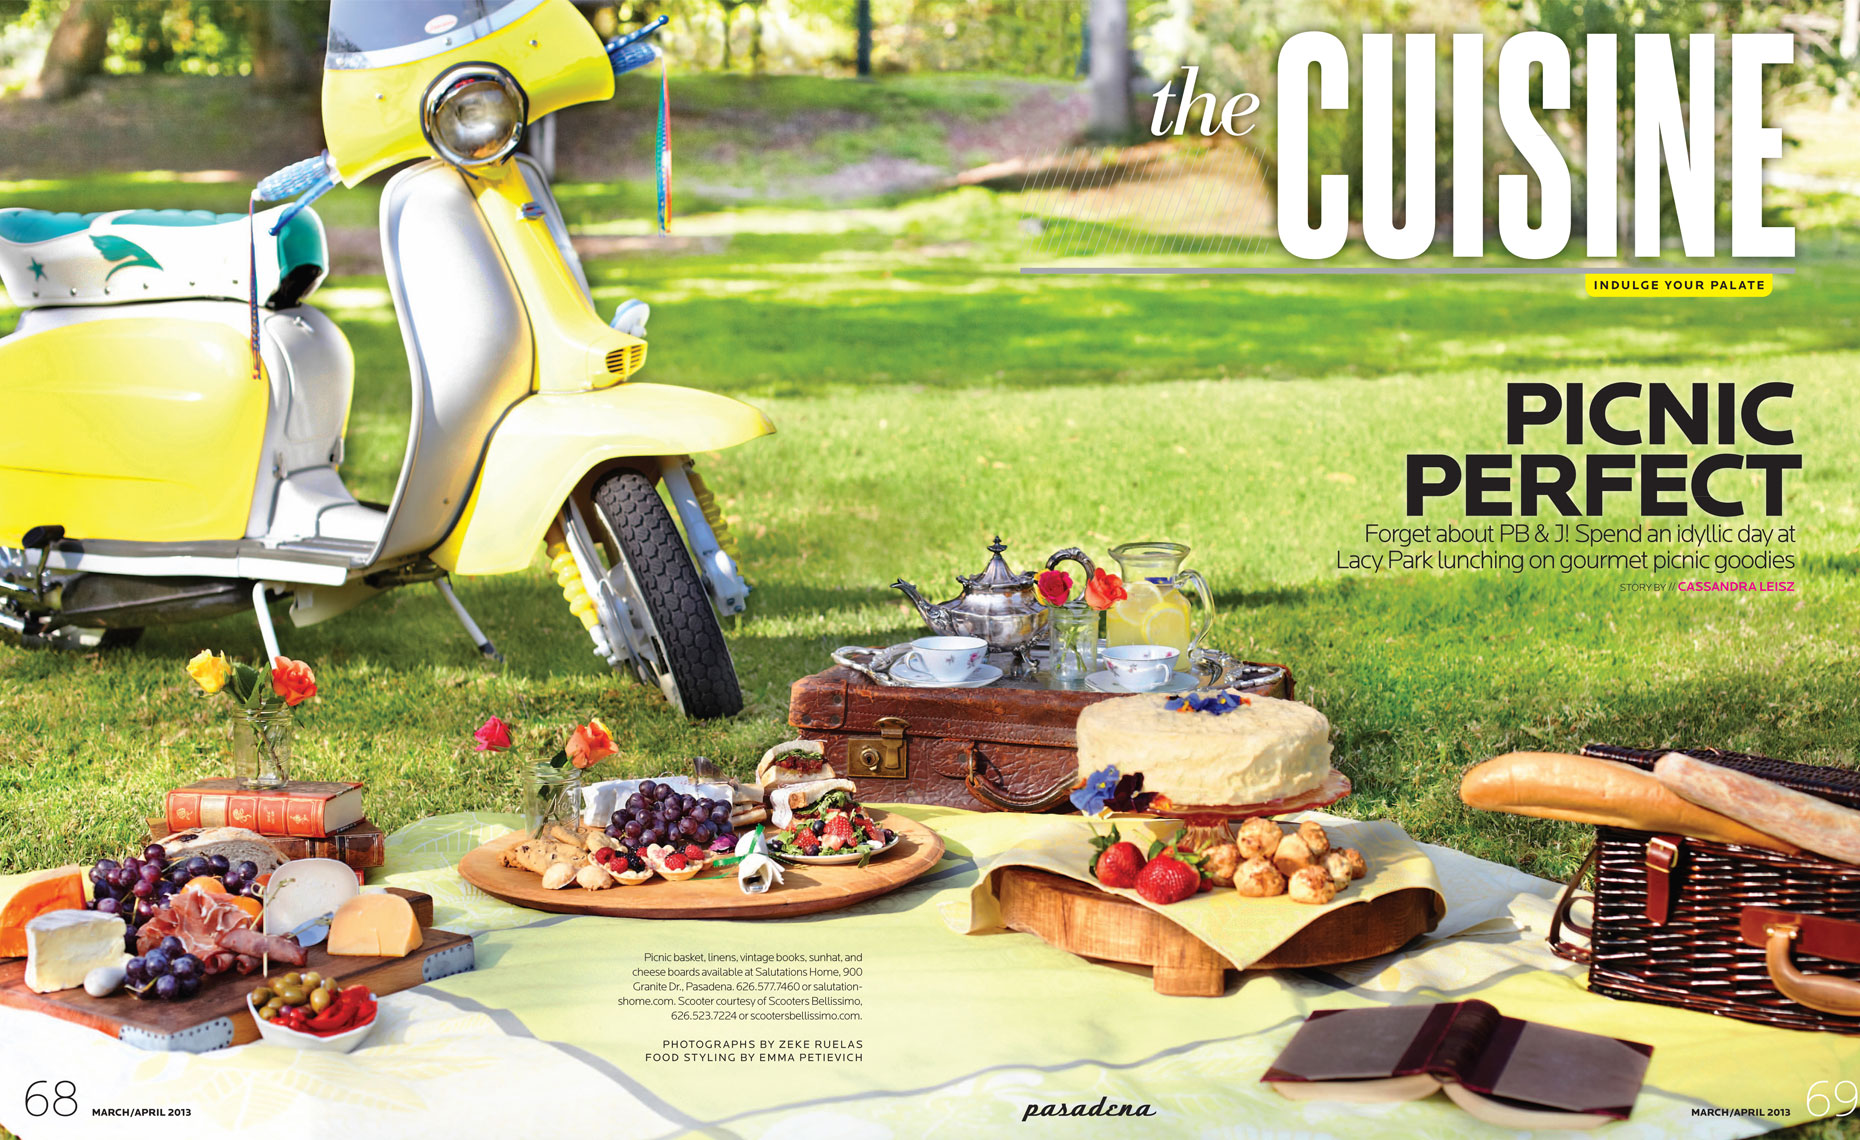 Picnic_Perfect_Pasadena_Magazine_1